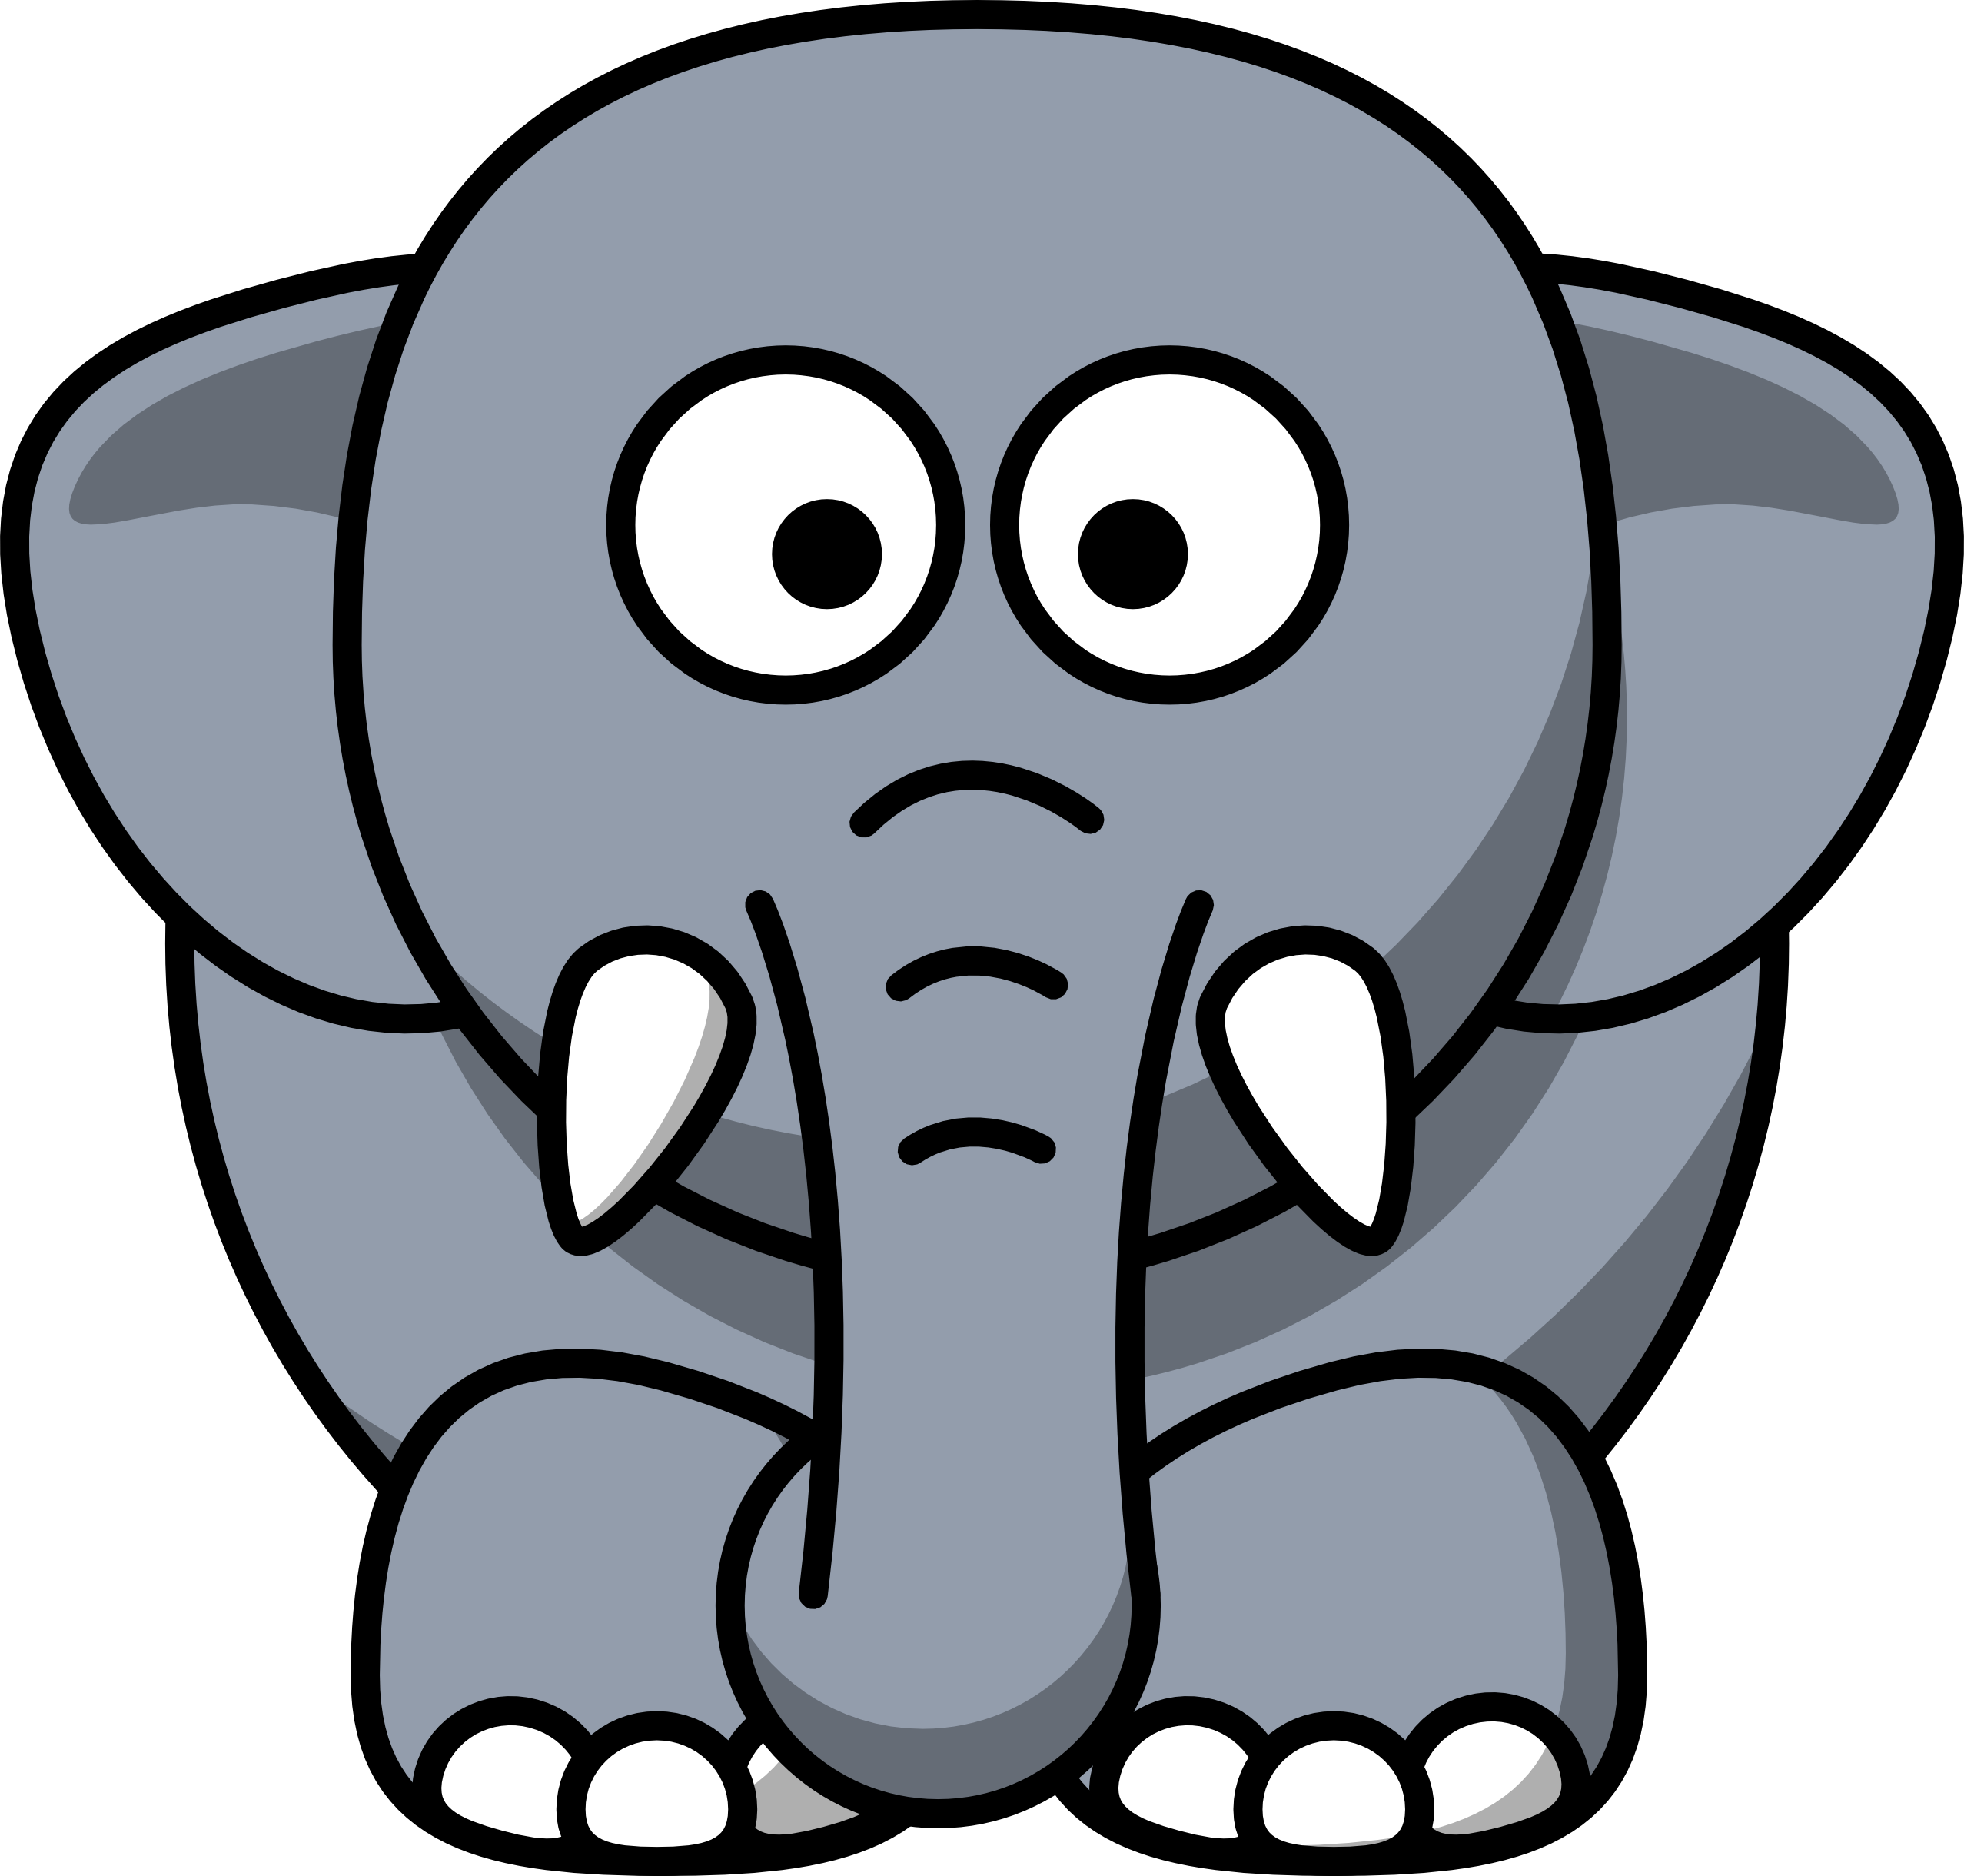 Drawing laboratory elephant. Free vector art download